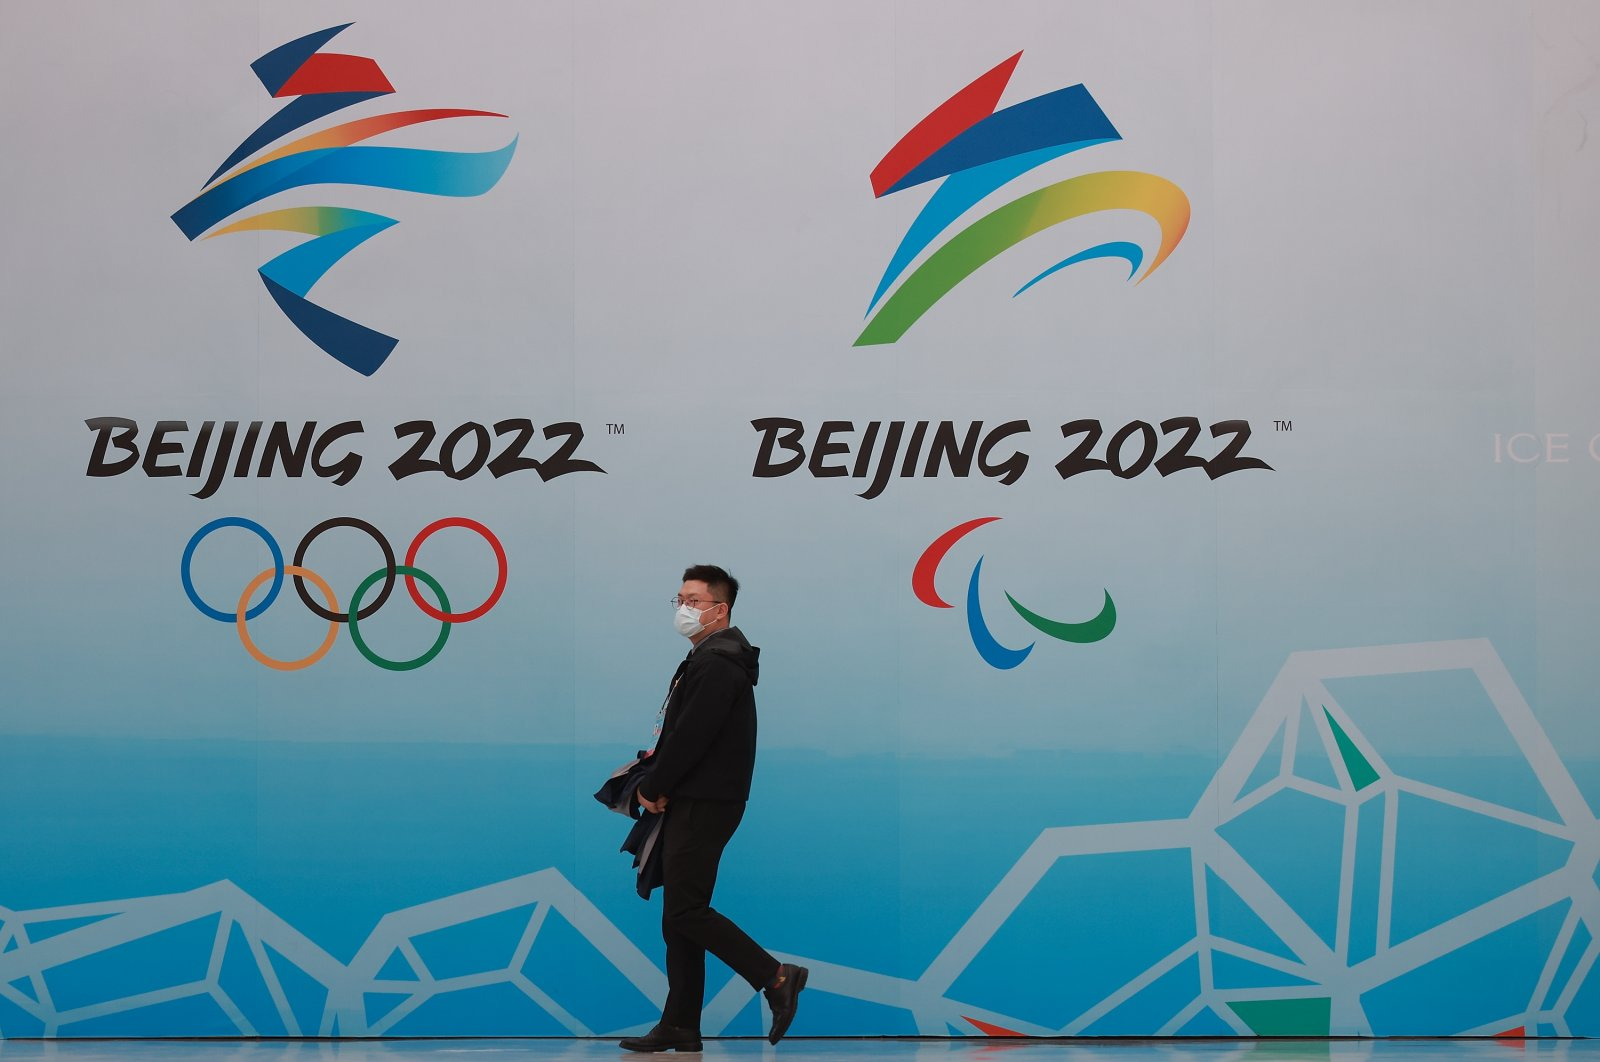 A Chinese man wears a protective mask as he walks in front of the logos of the 2022 Beijing Winter Olympics, in Beijing, China, April 9, 2021. (Getty Images)